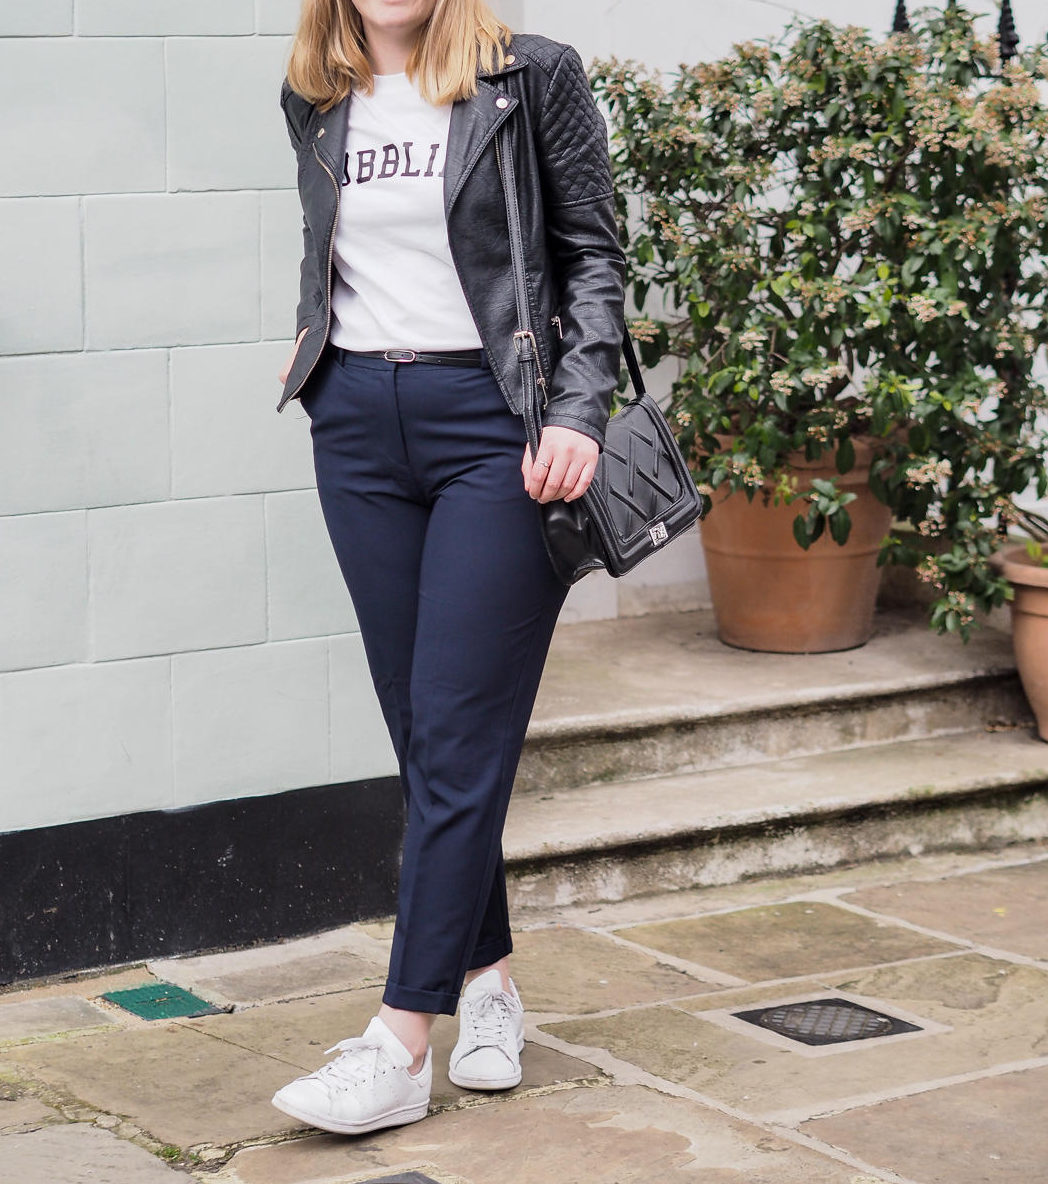 casual outfit with trousers, trainers and leather jacket